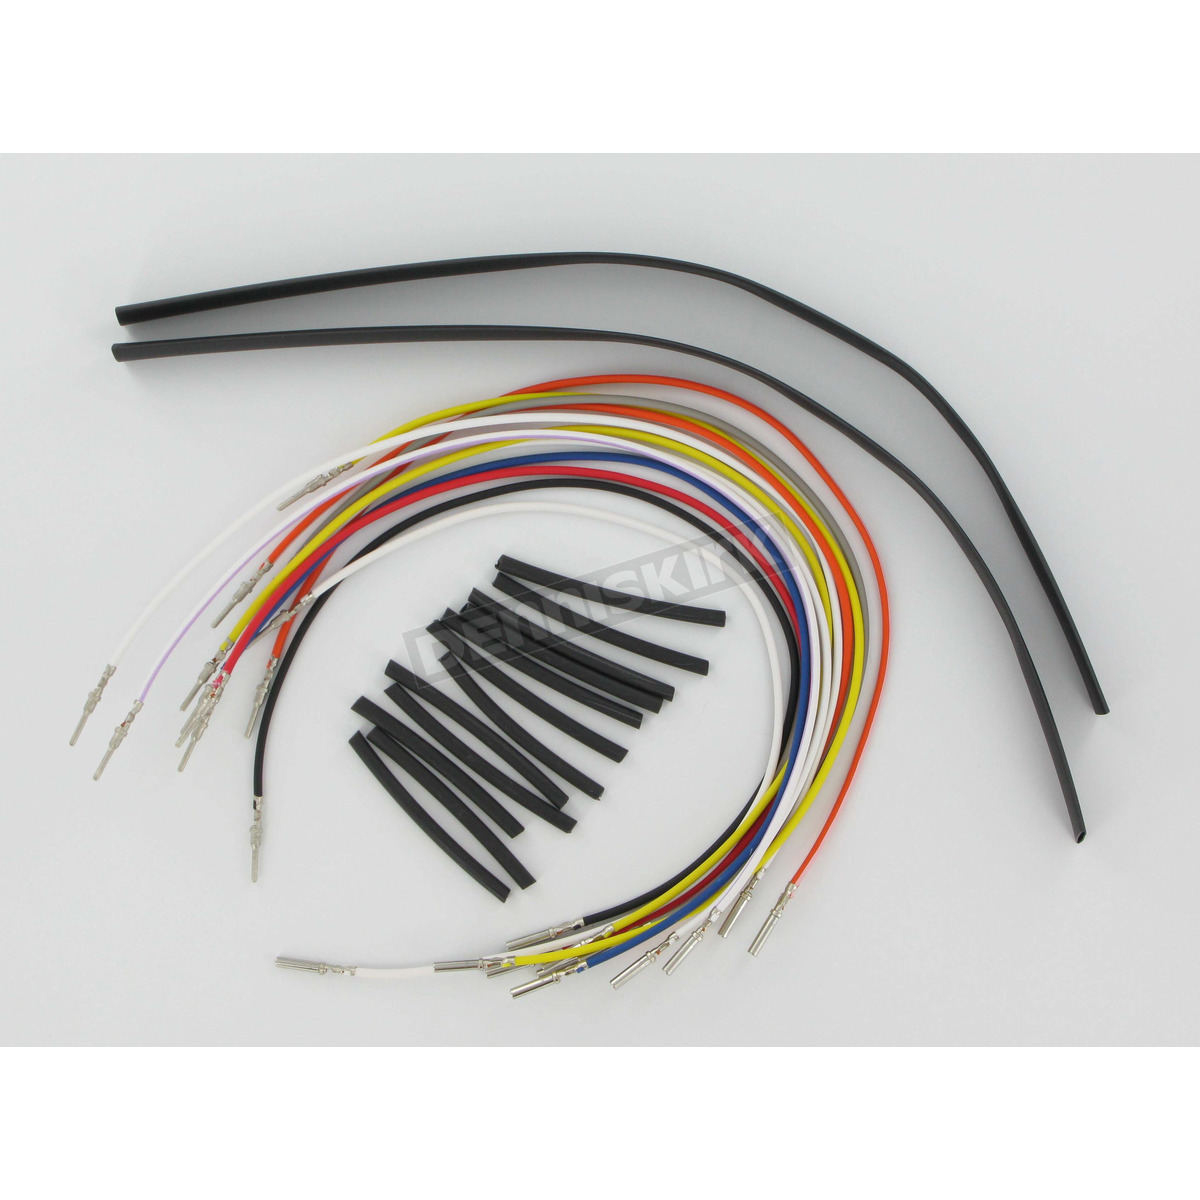 Novello 4 in. Handlebar Wire Harness Extension Kit - NIL-WH4 Harley on harley davidson wiring harness kit, cooling fan wiring harness, harley motorcycle helmet kit diagram, harley sportster wire schematics, harley speedometer wiring diagram 2012,